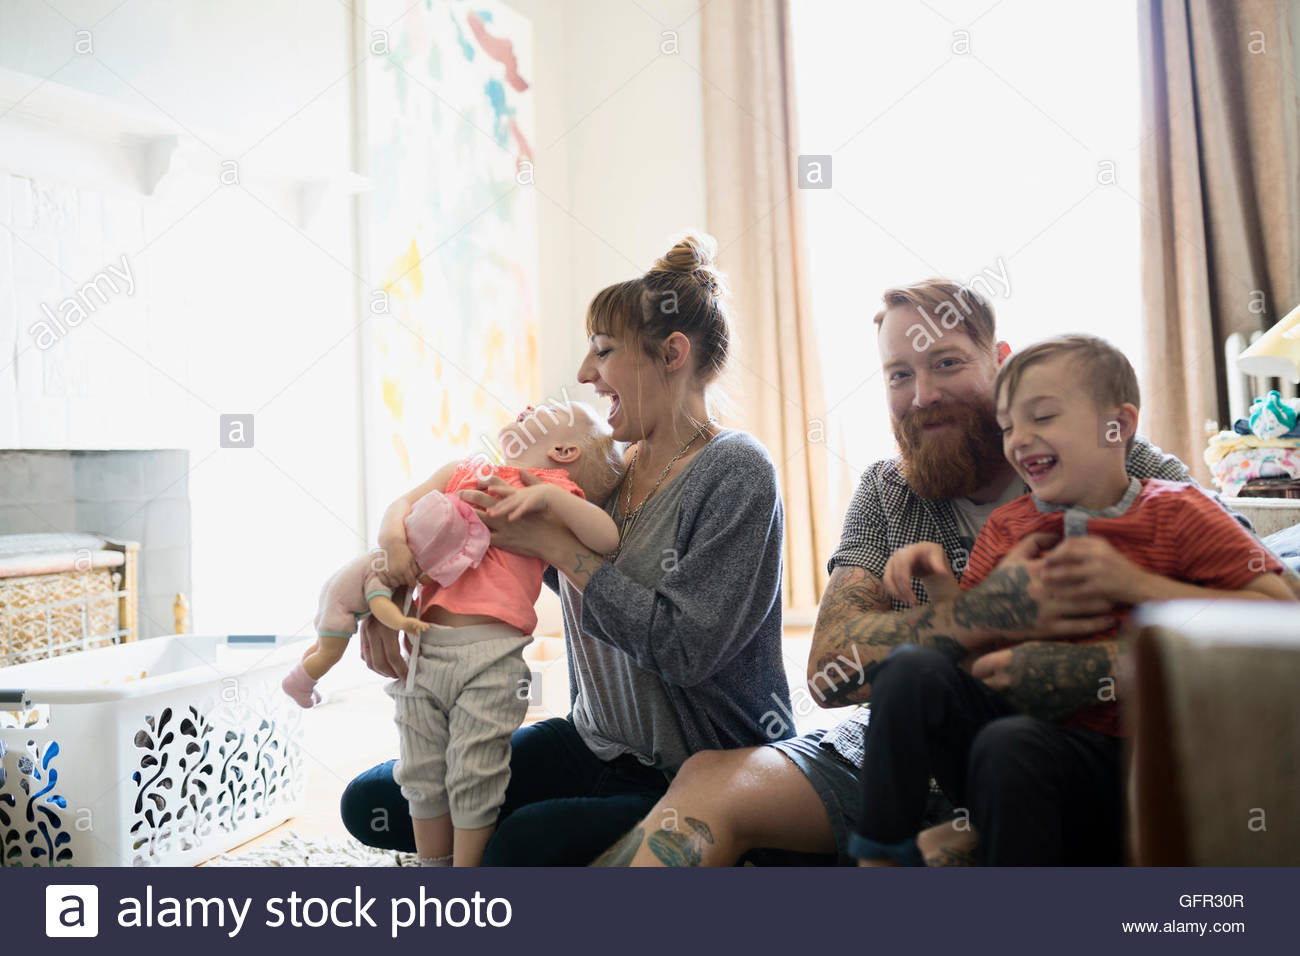 Young family in living room Photo Stock